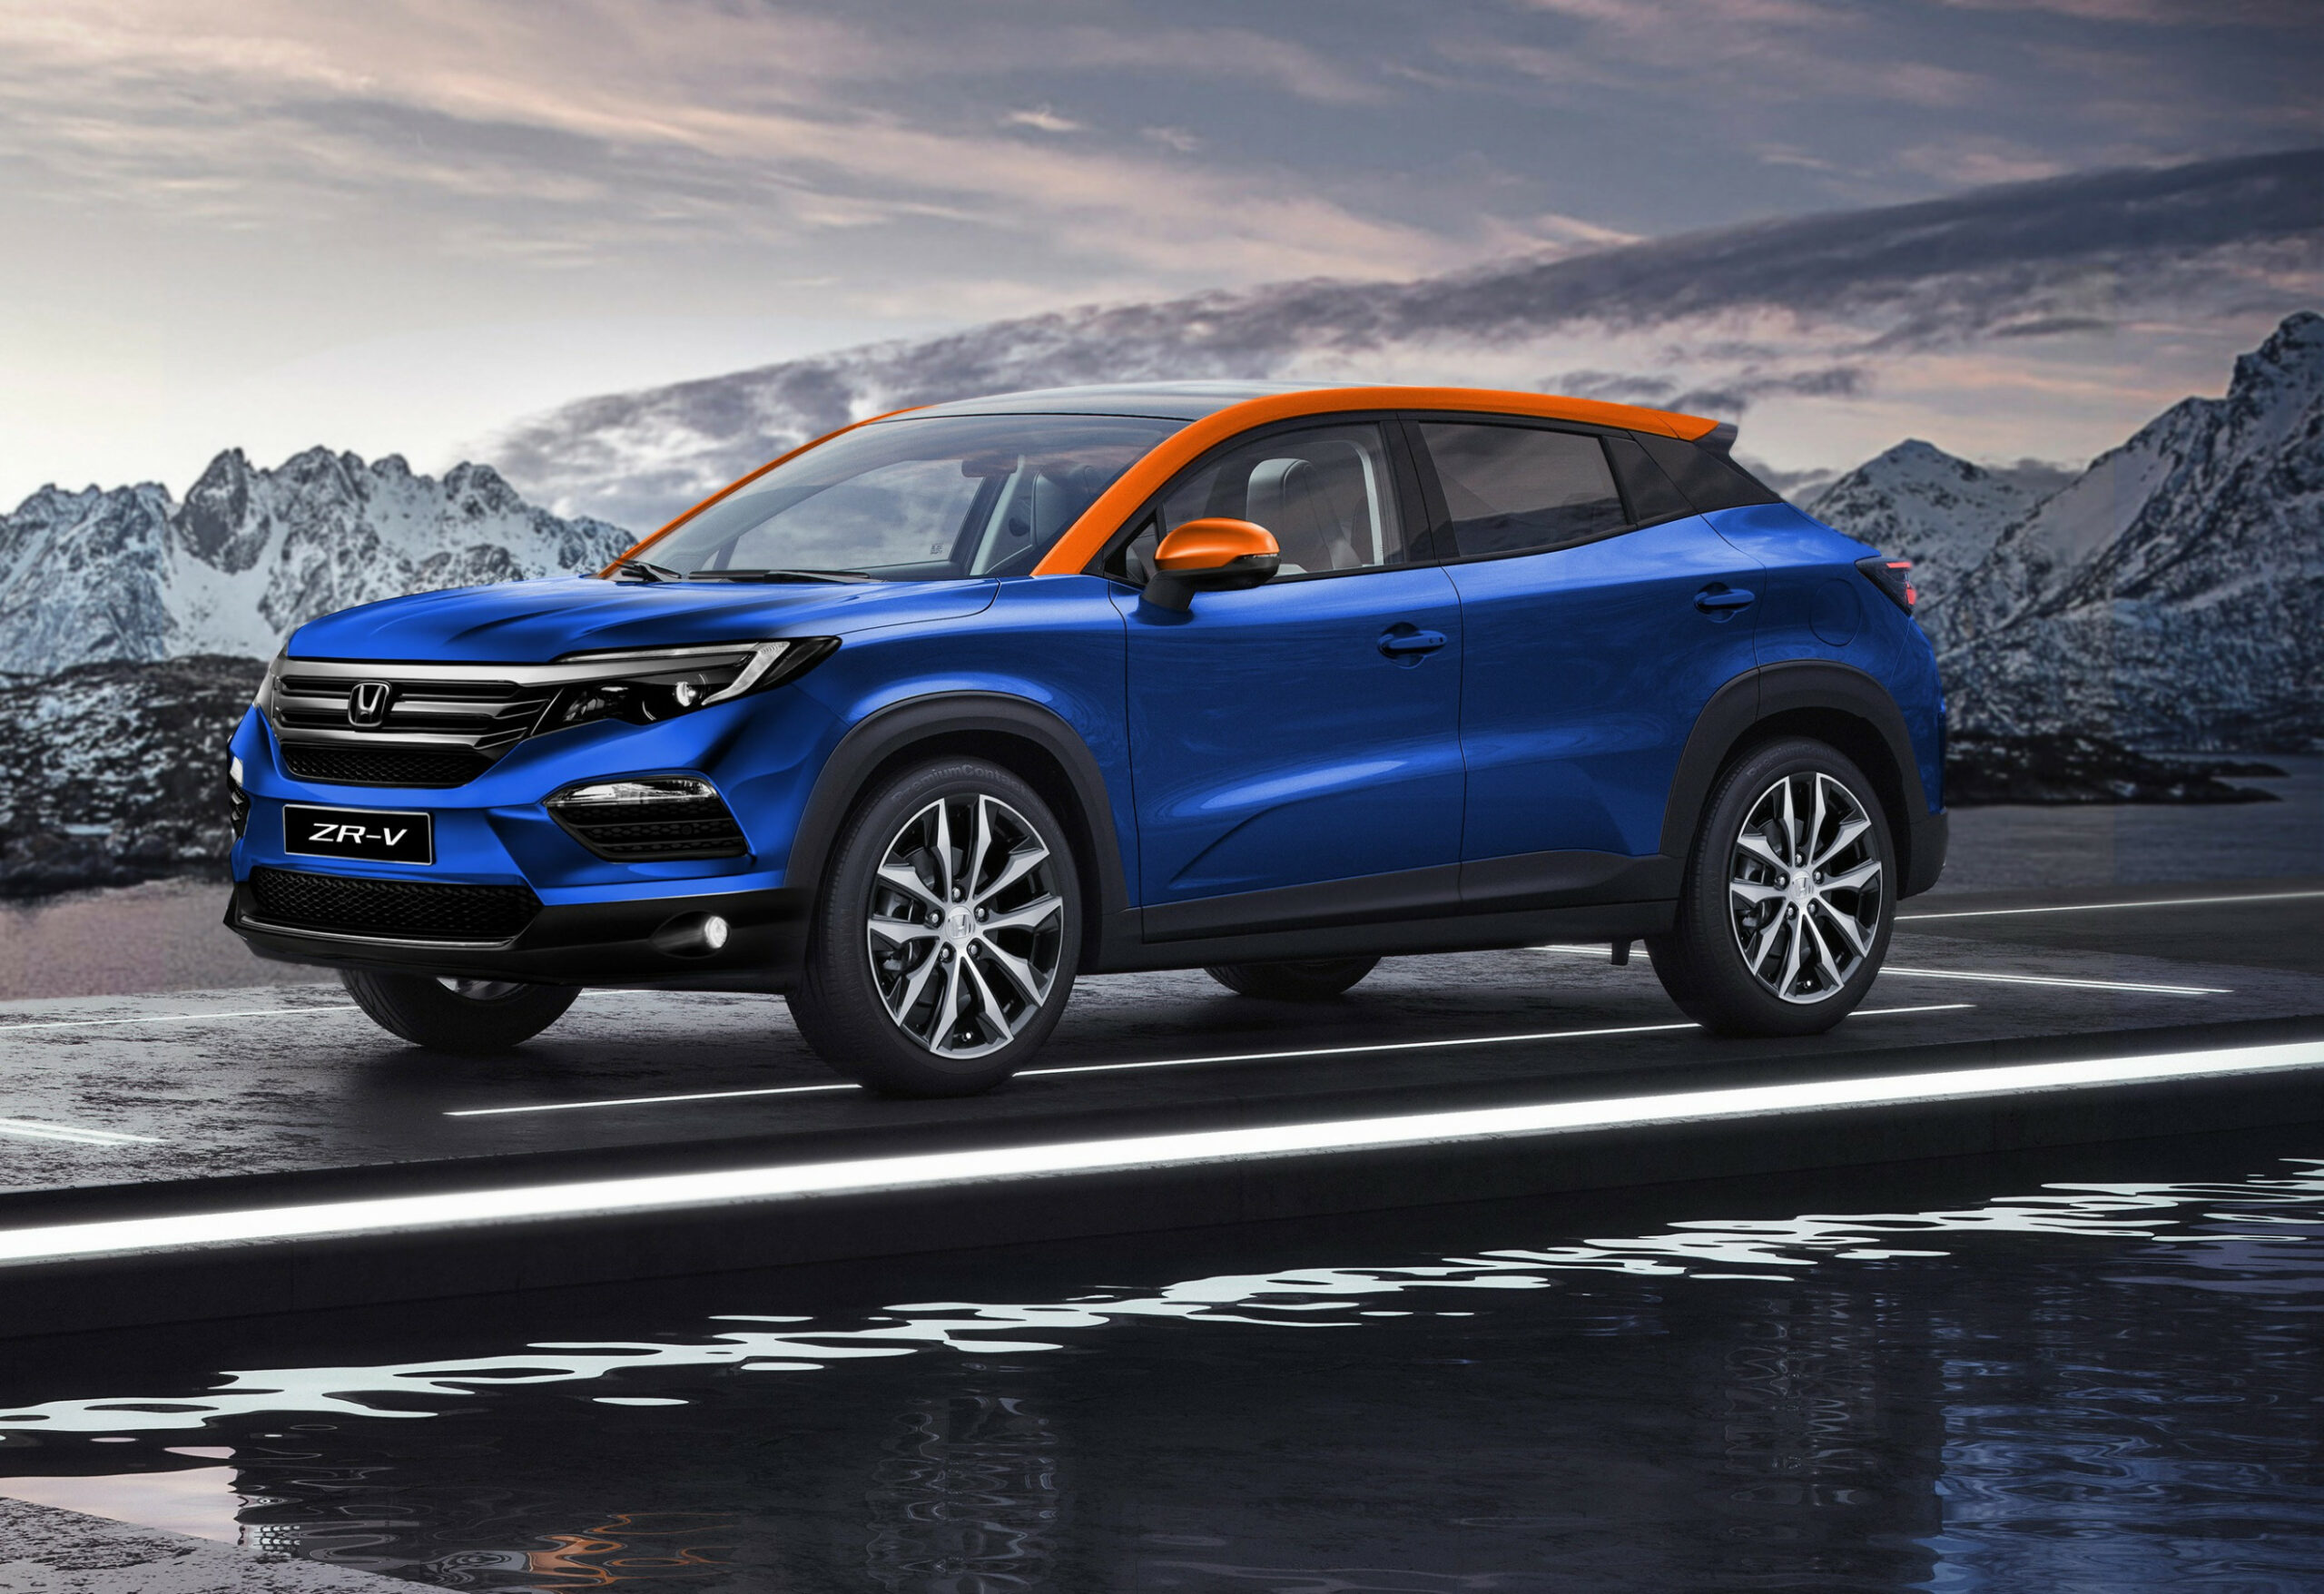 Picture When Will 2022 Honda Crv Be Released